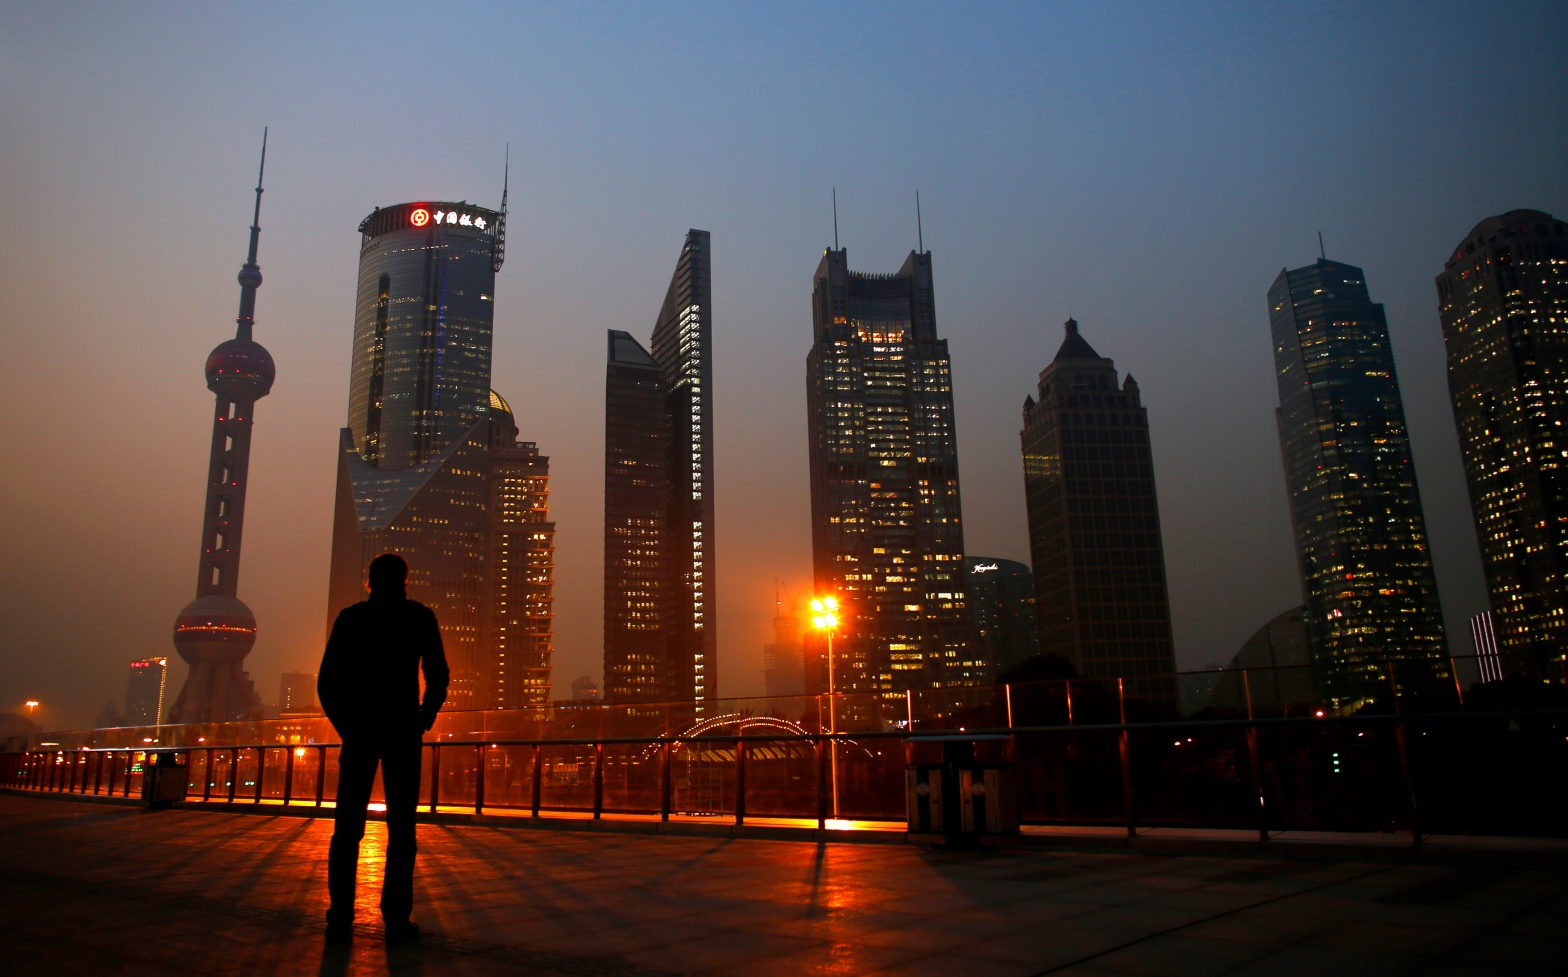 CARLOS BARRIA / REUTERS The Pudong financial district of Shanghai, November 2013